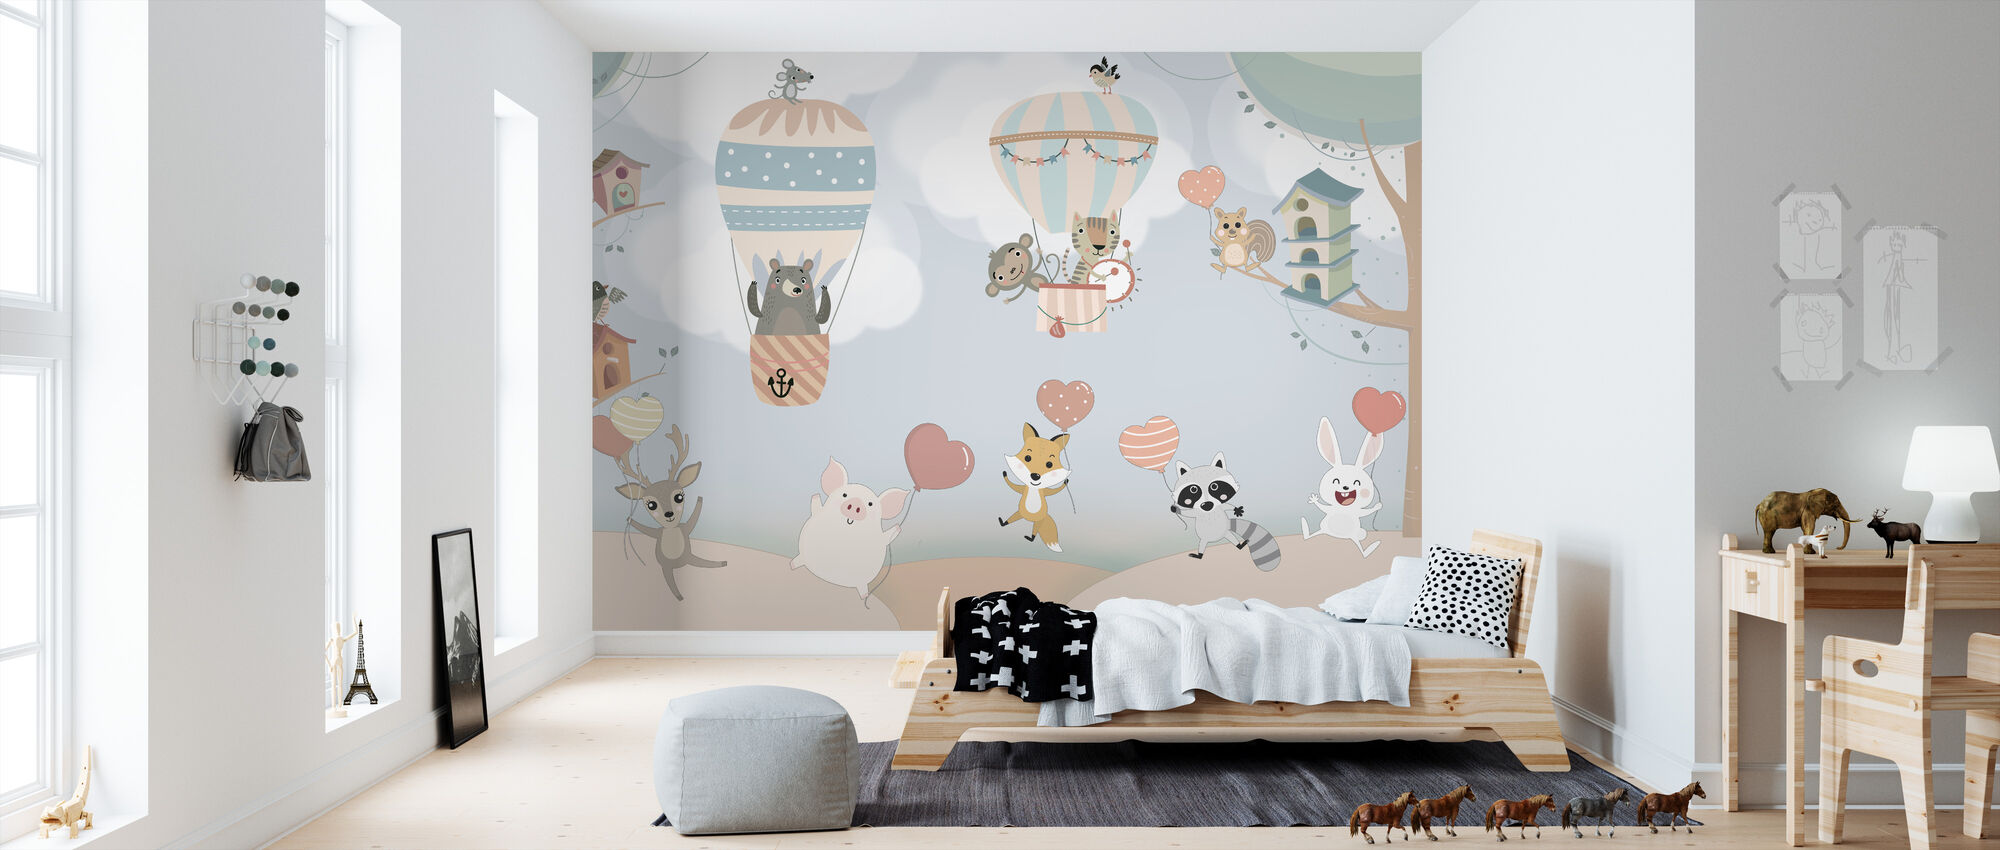 Happy Animal Buddies - Wallpaper - Kids Room